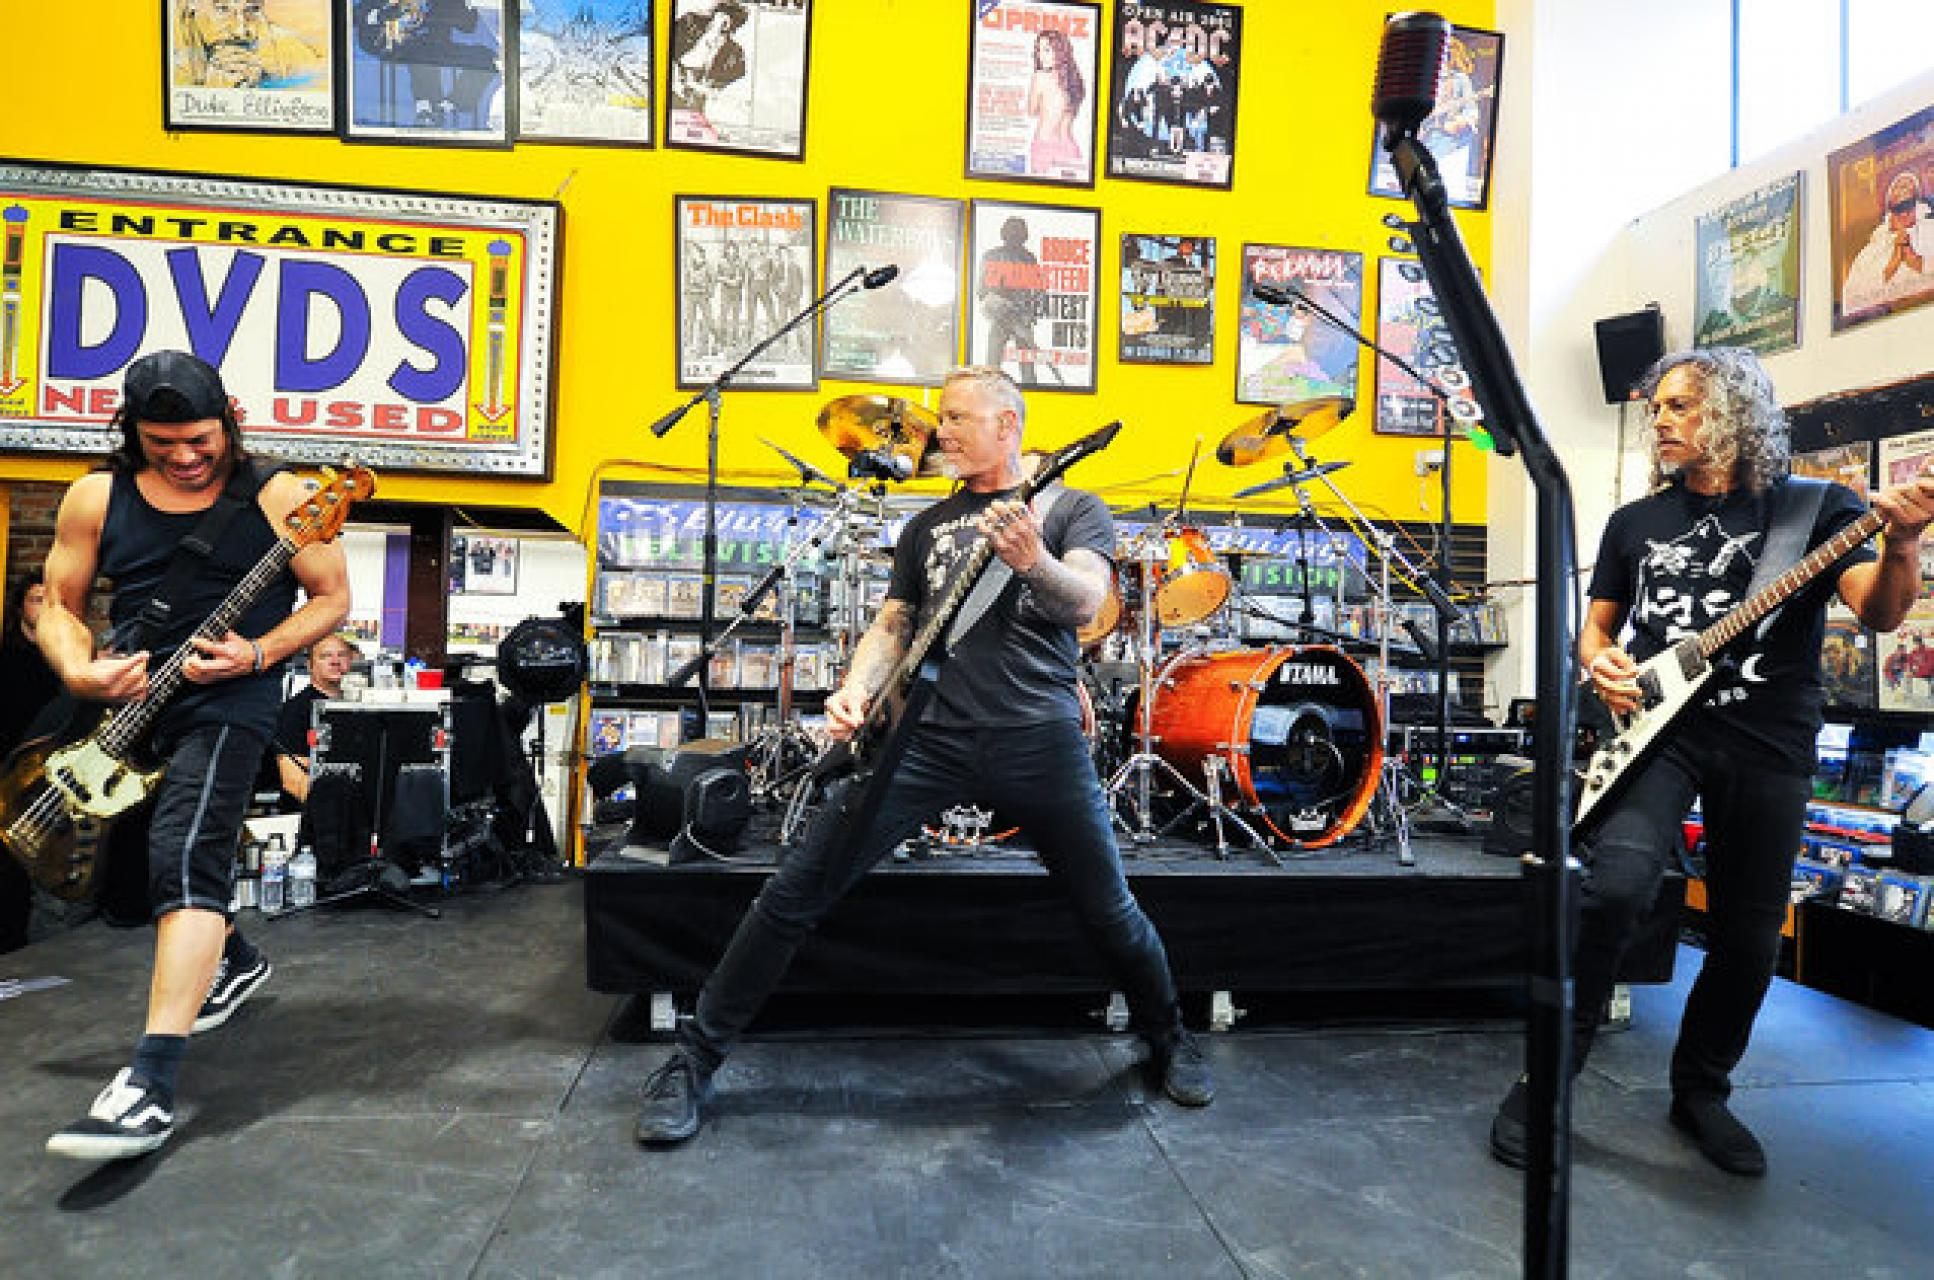 Metallica performing at a Record Store Day event in California, 2016